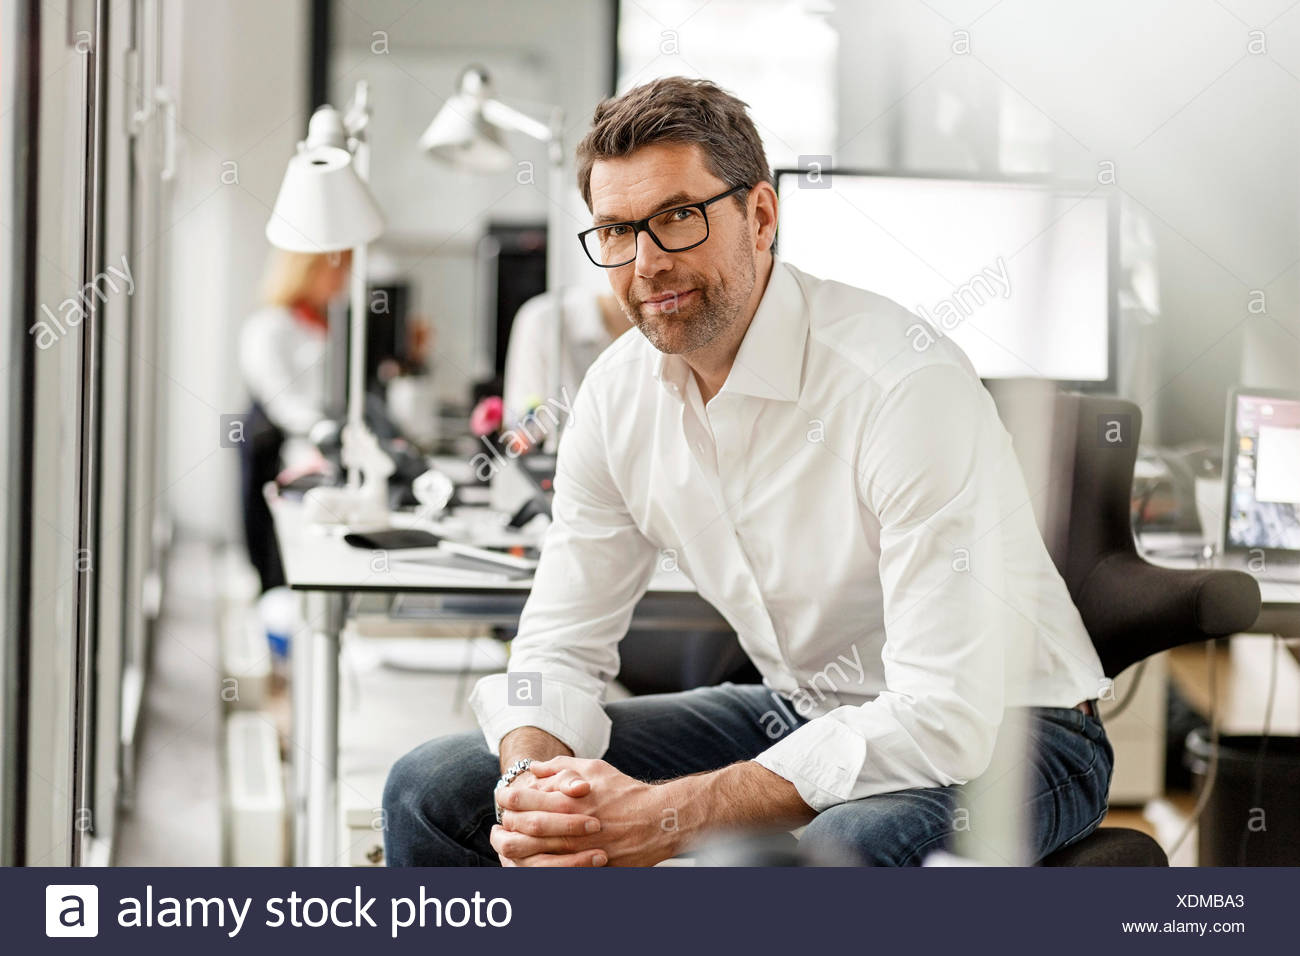 Portrait of businessman at desk in office - Stock Image